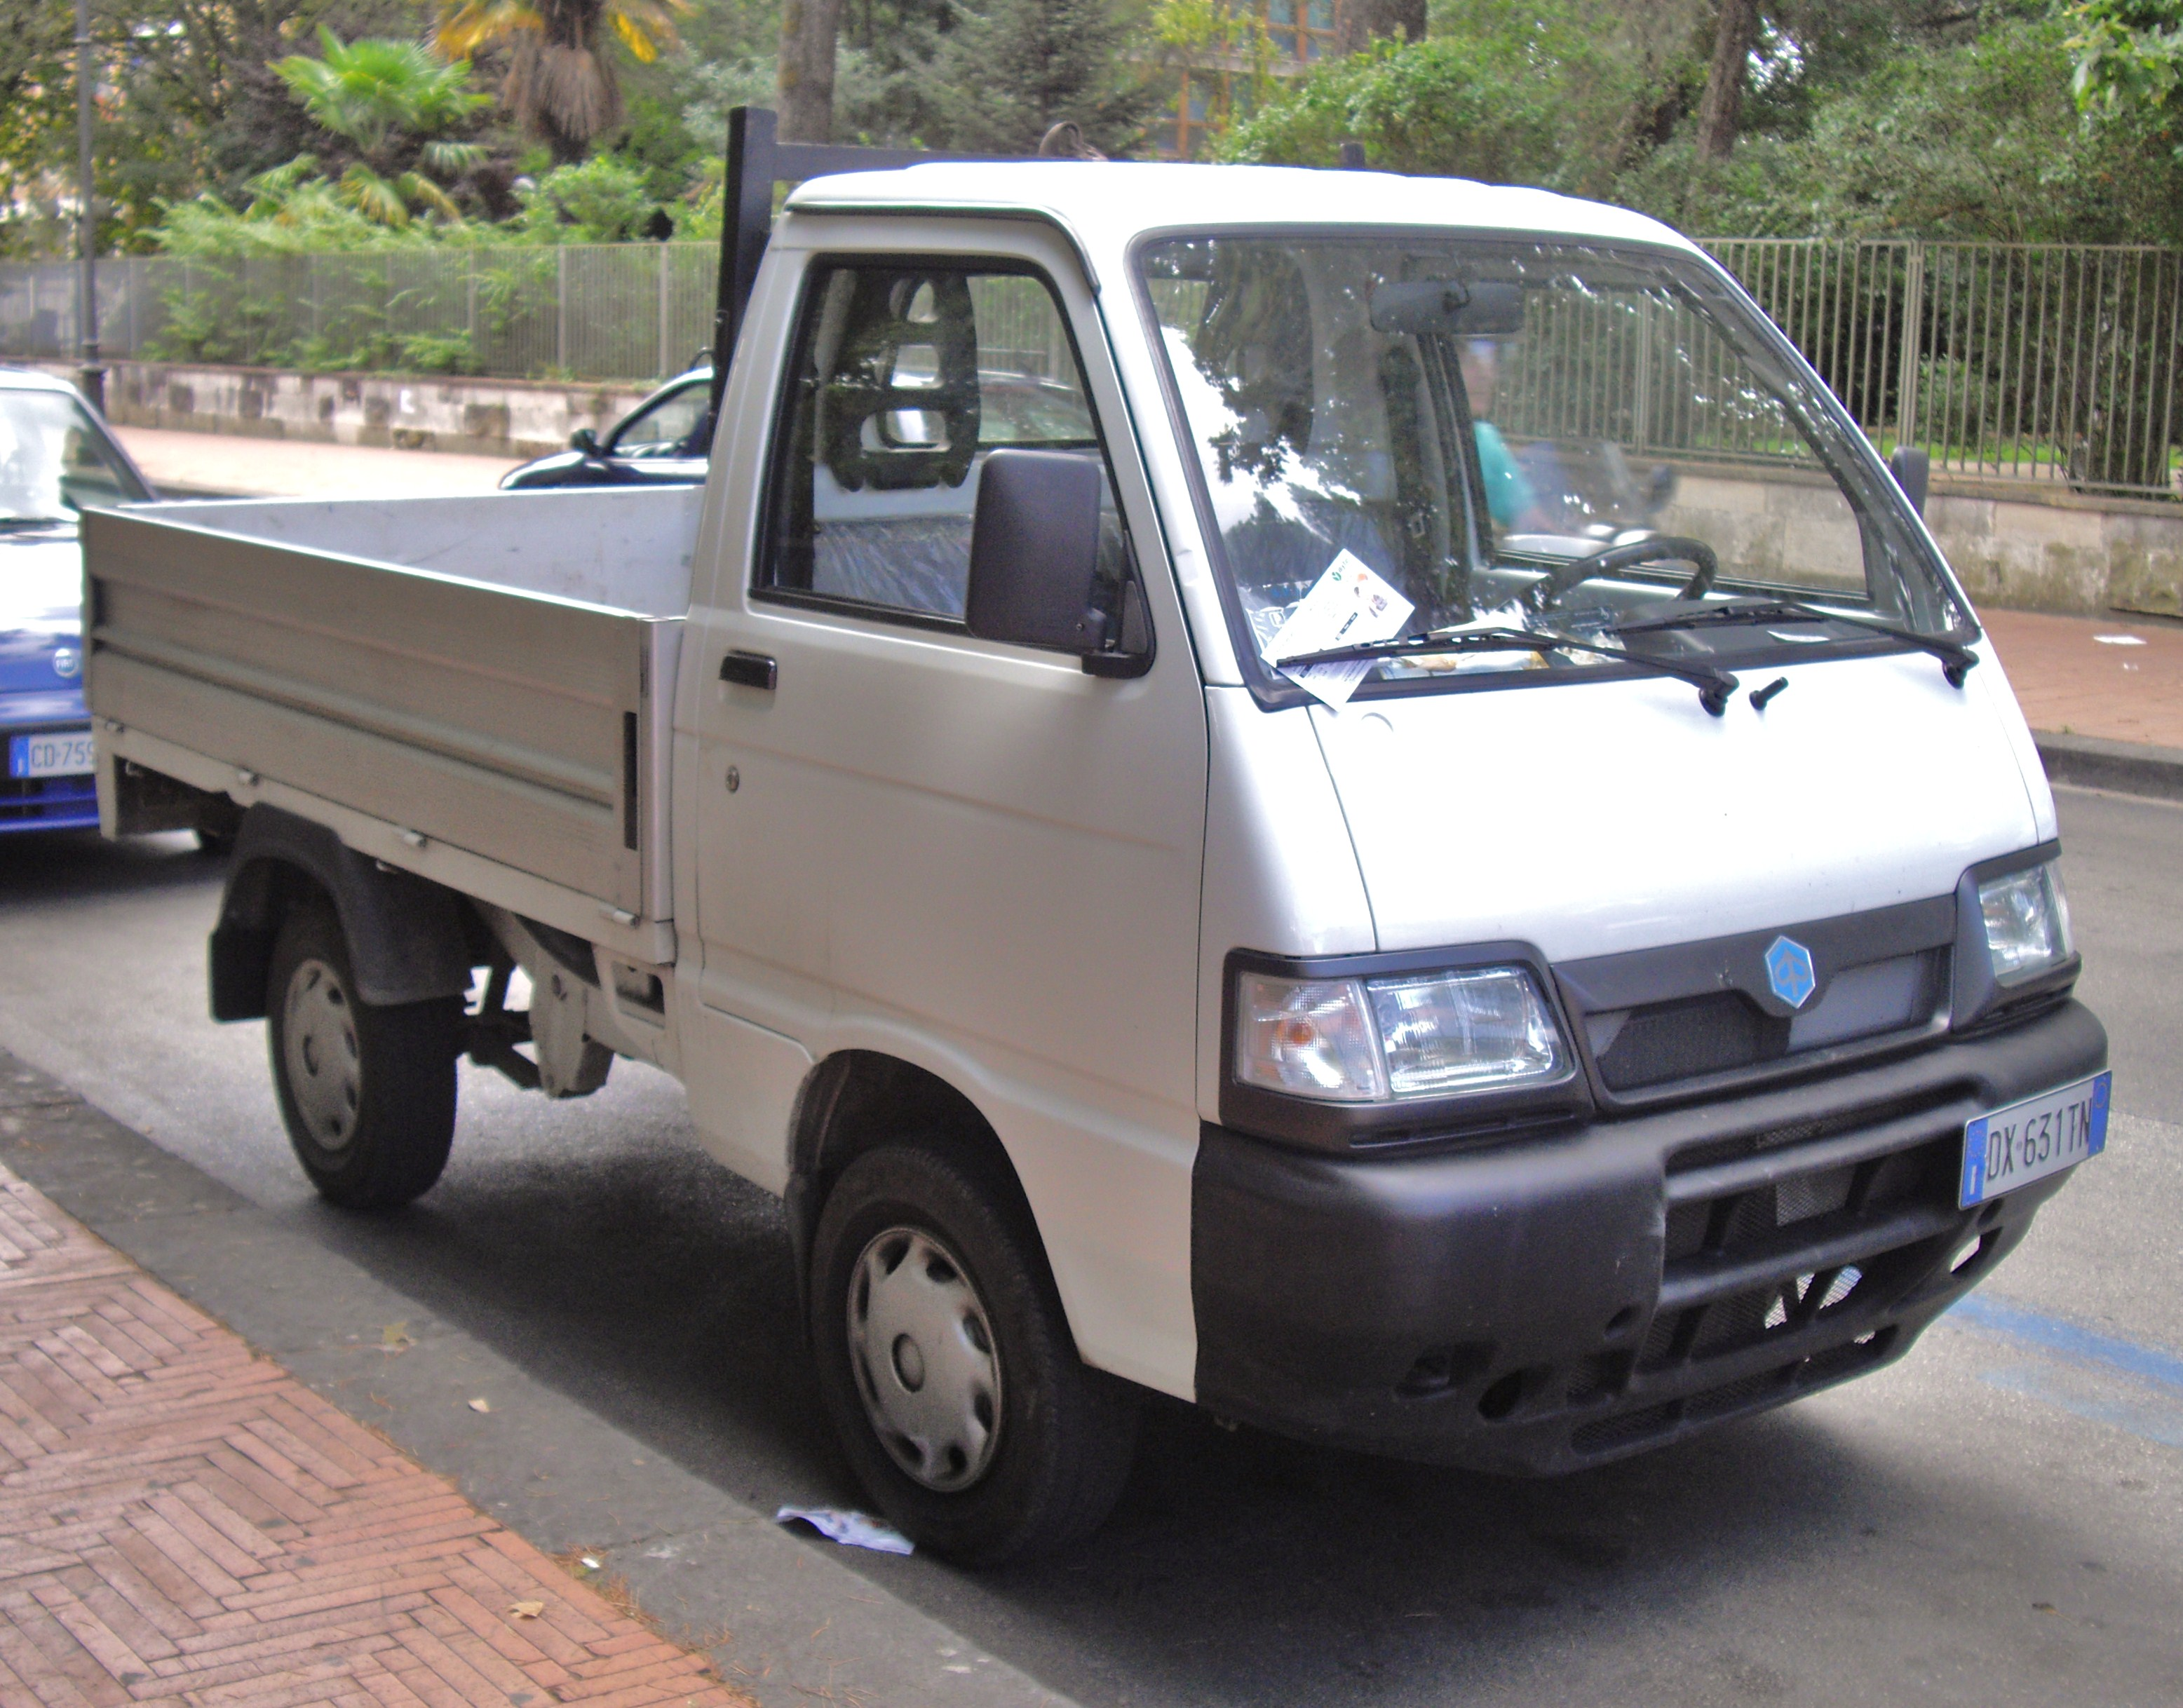 file:piaggio porter pick up - wikimedia commons